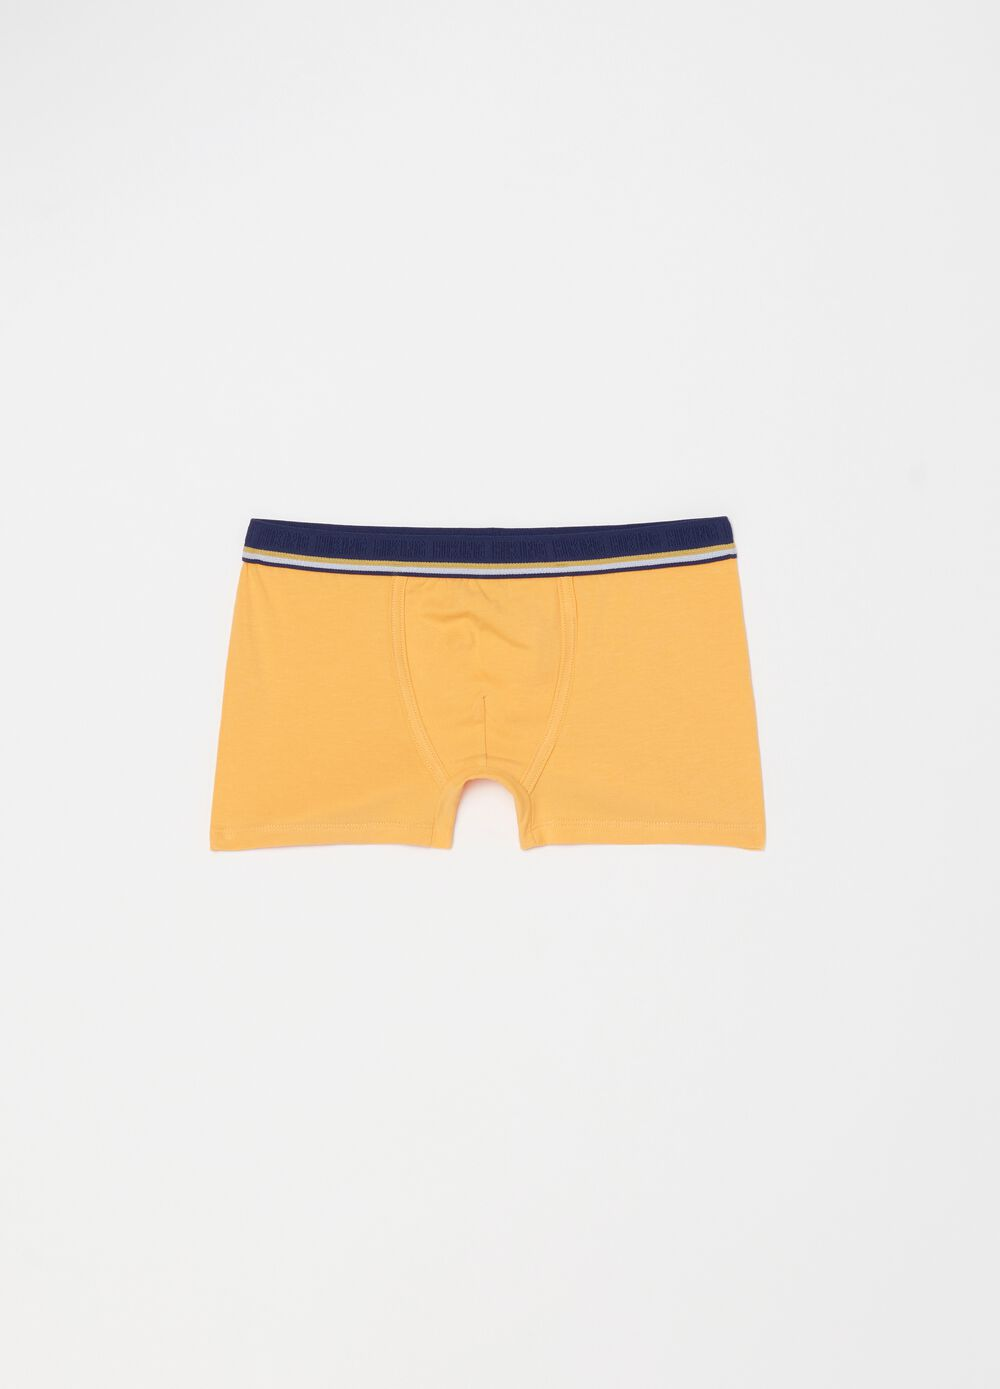 Solid colour stretch organic cotton boxer shorts